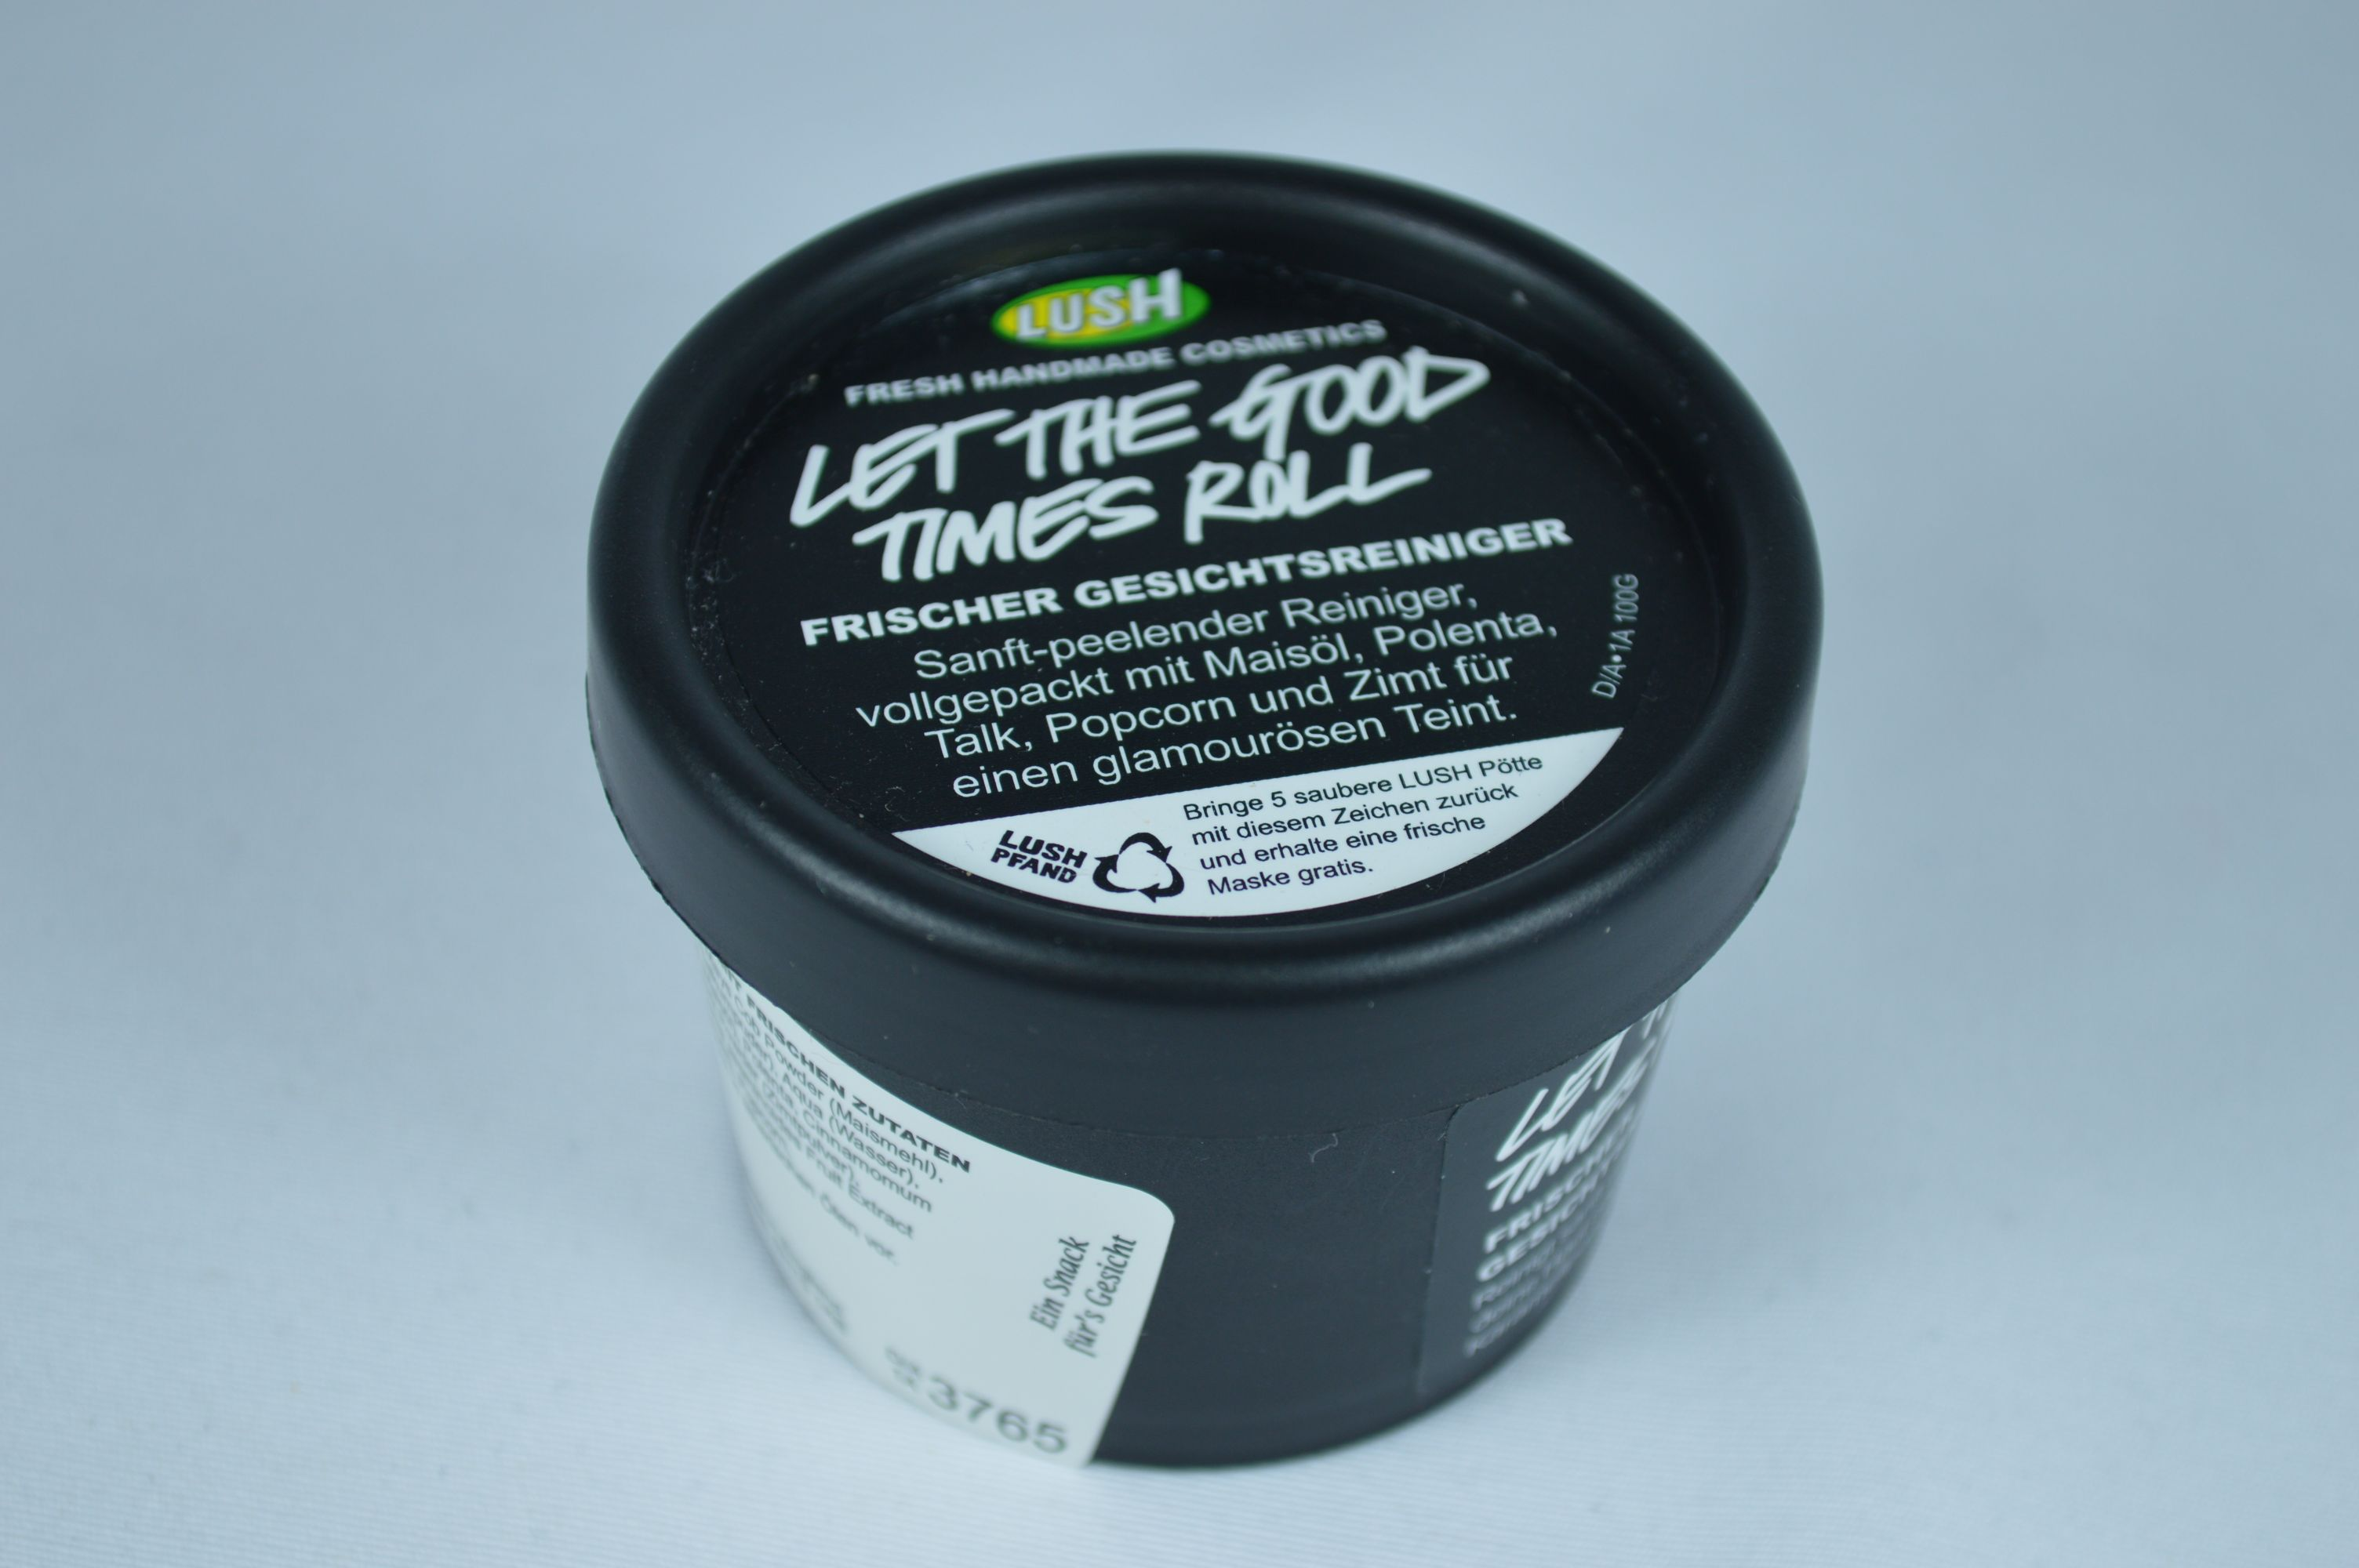 Lush Let the Good Times Roll